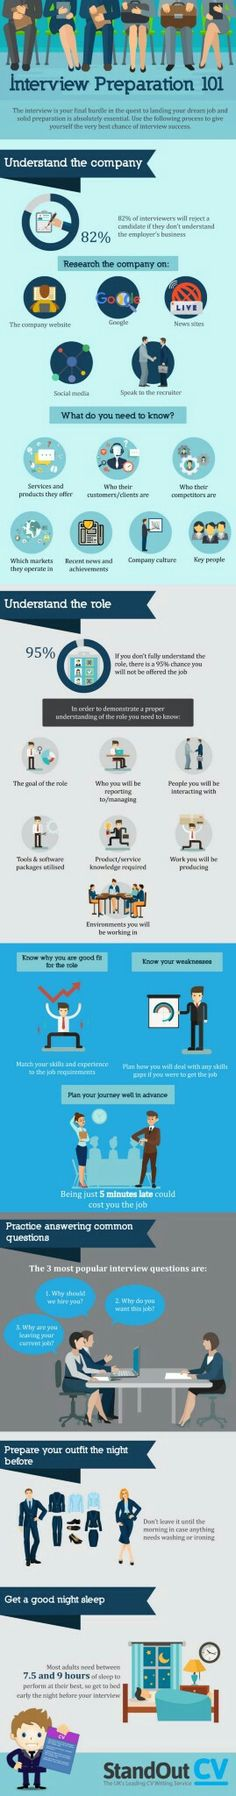 You Need More Than A Paper Resume INFOGRAPHIC Infographic - how to update your resume